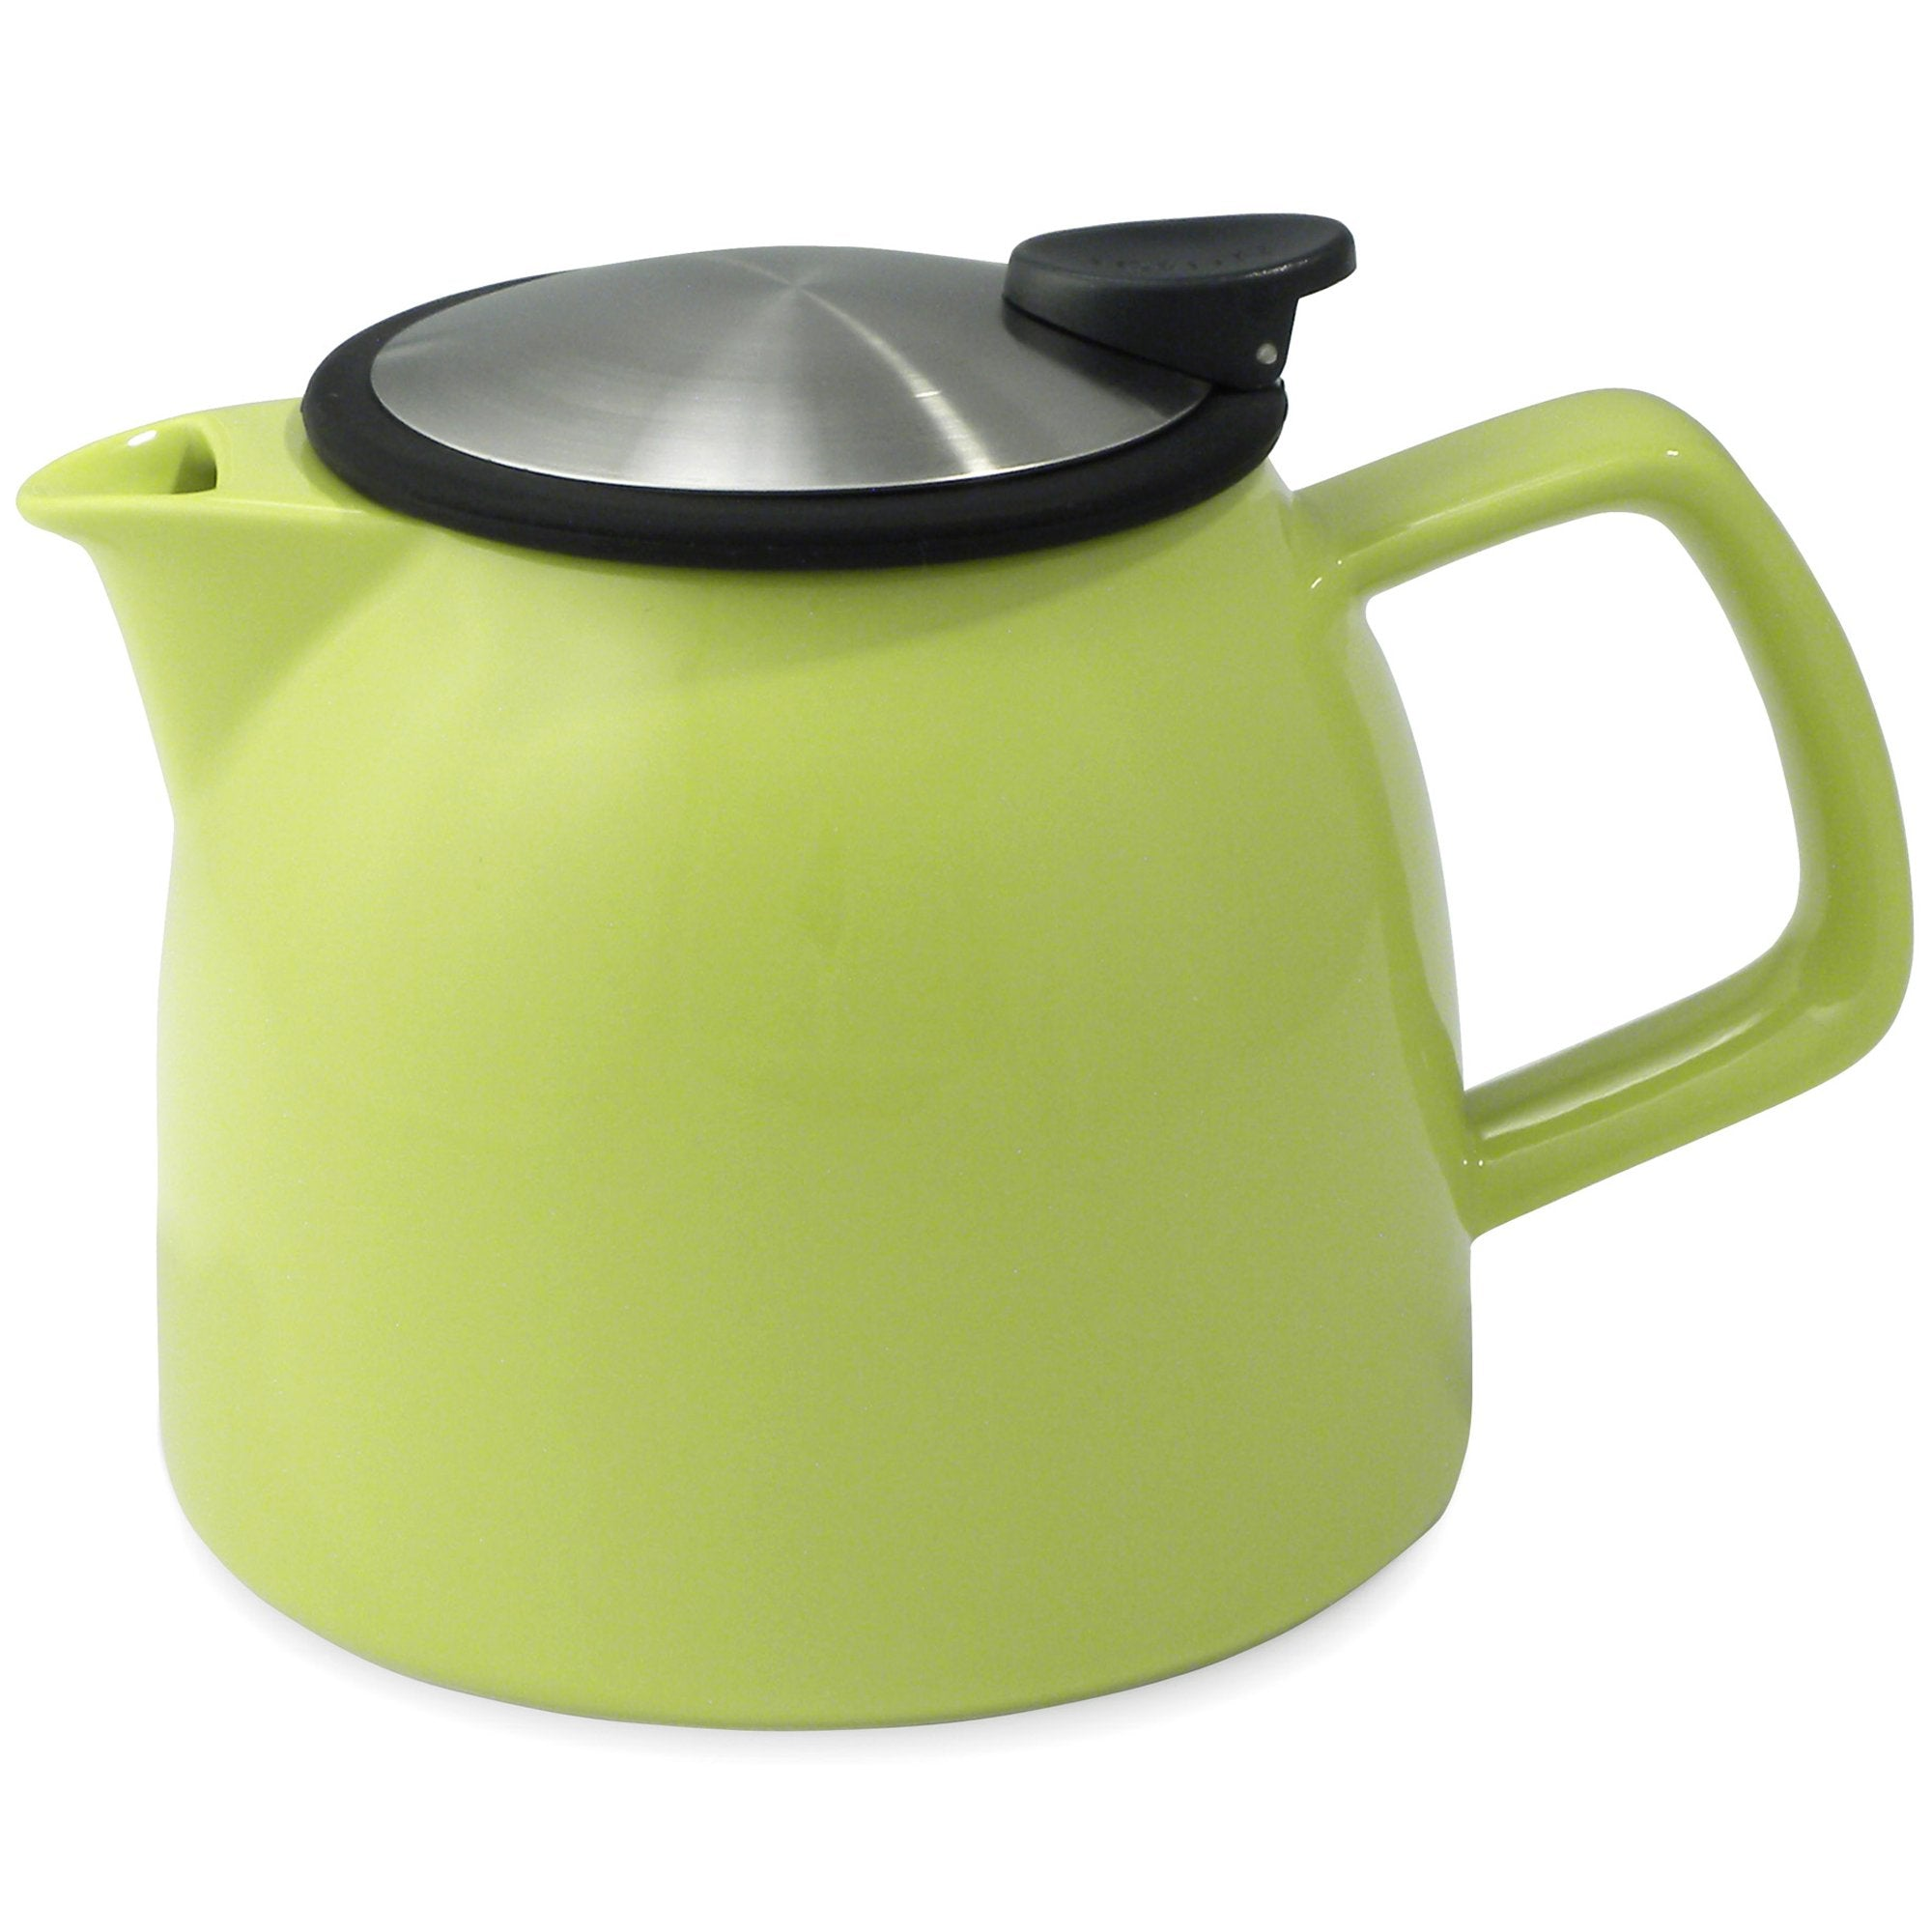 Tealula 26 oz bell-shaped lime green teapot with square handle and black and silver detachable push-on-lid